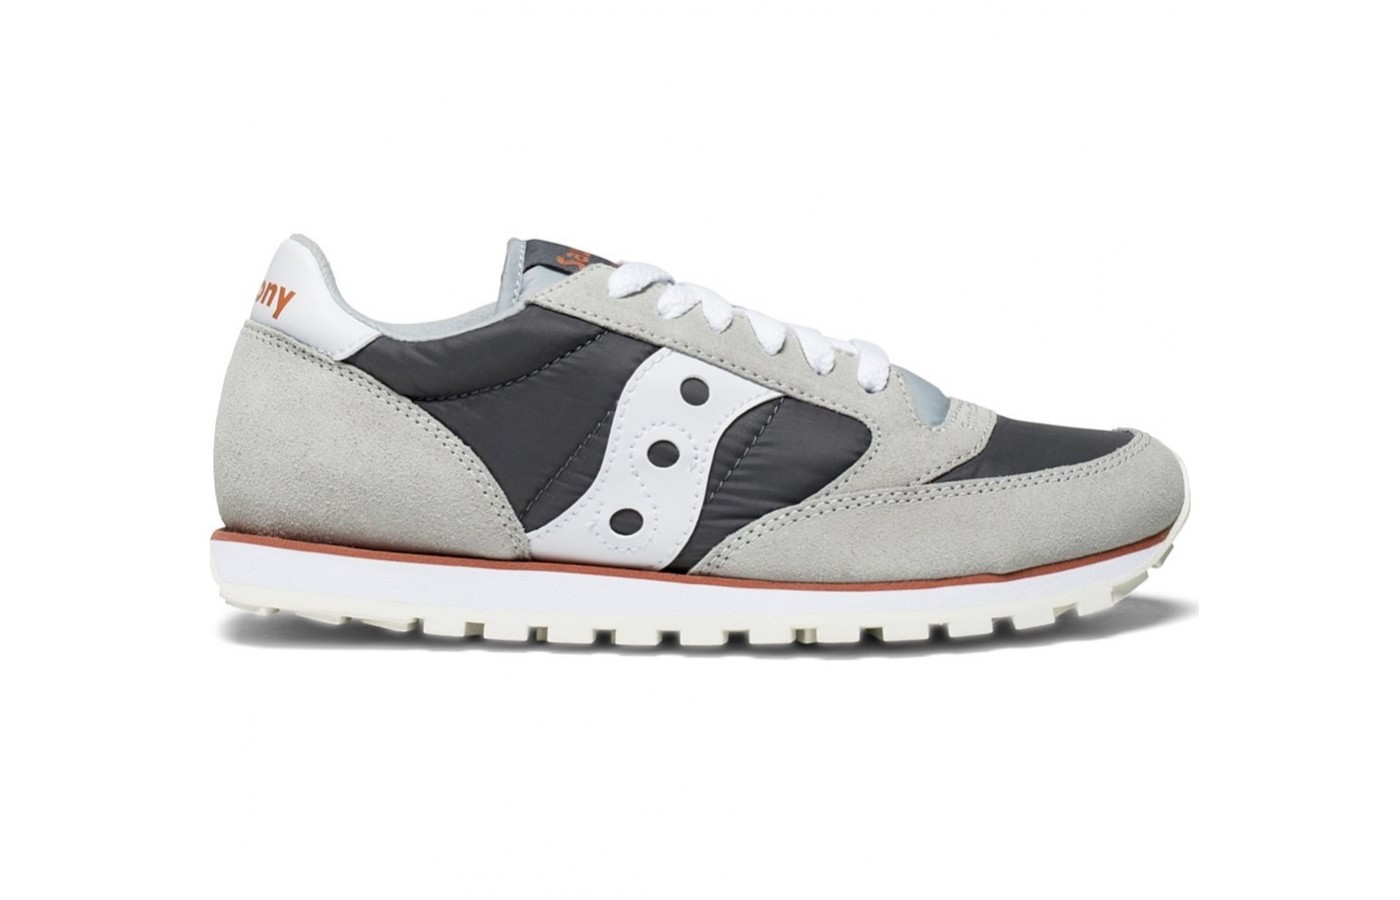 The Saucony Jazz Low Pro offers textile lining for a more comfortable and form-fitted fit.